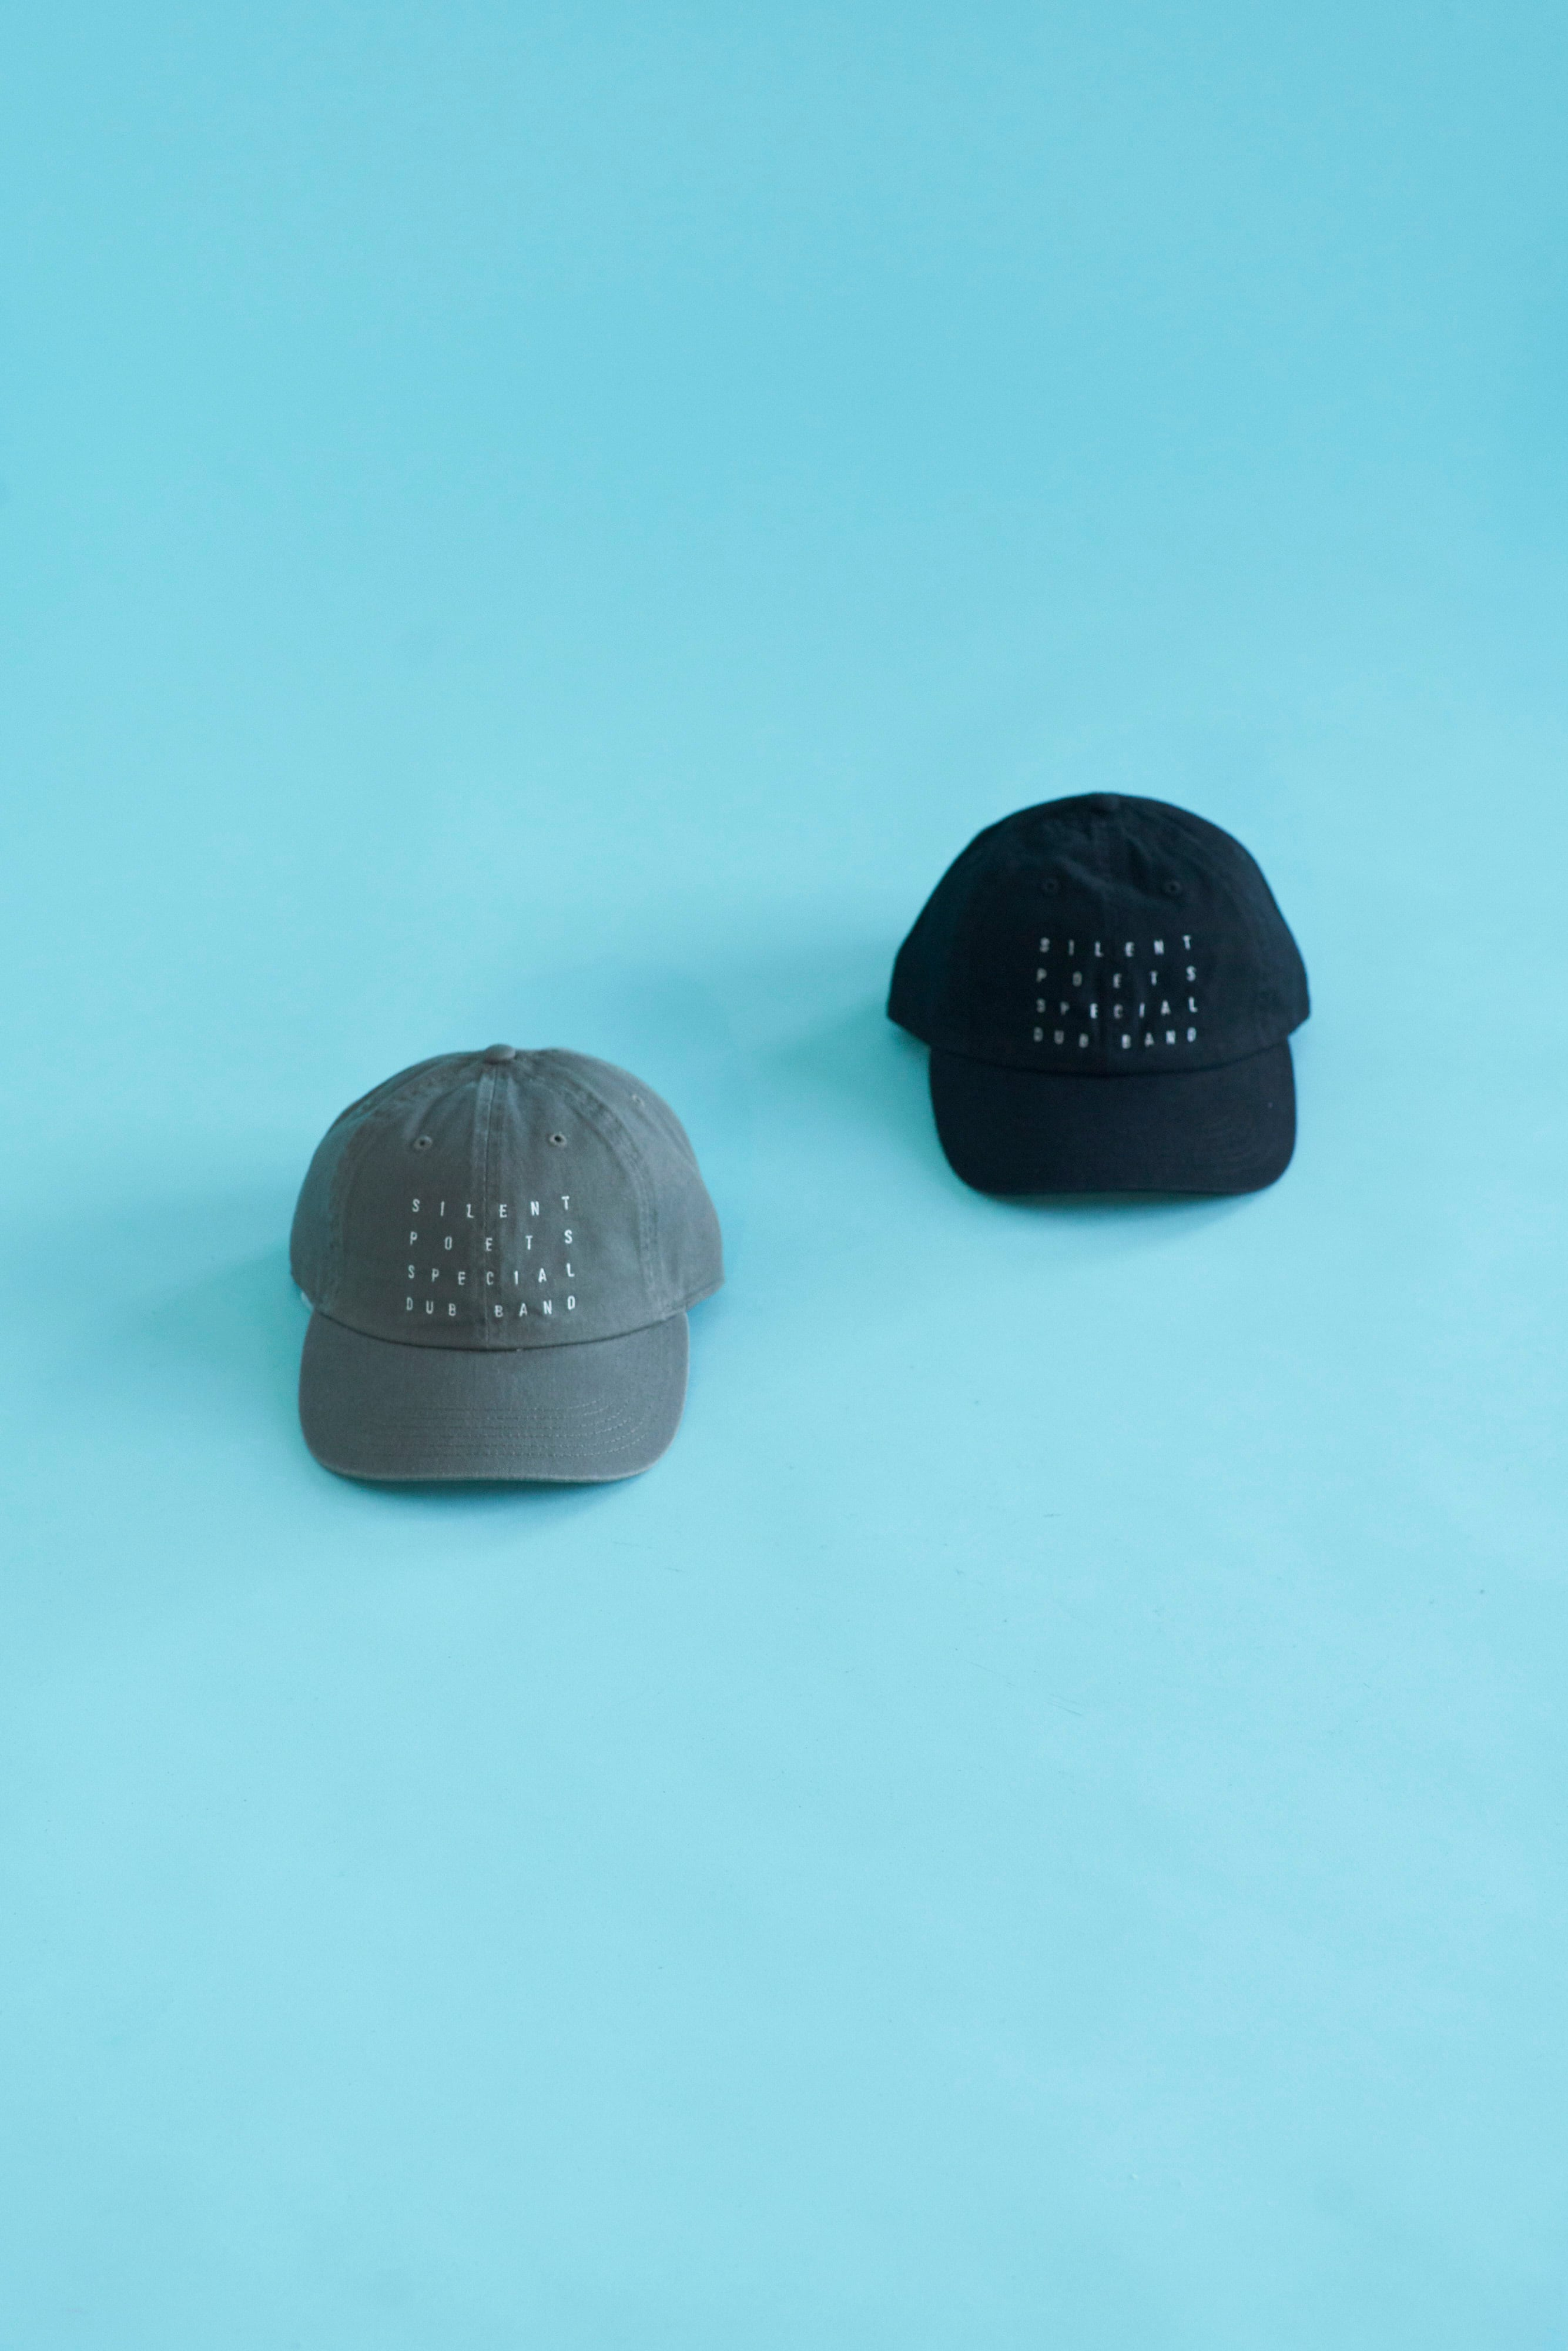 POET MEETS DUBWISE SILENT POETS SPECIAL DUB BAND Cap